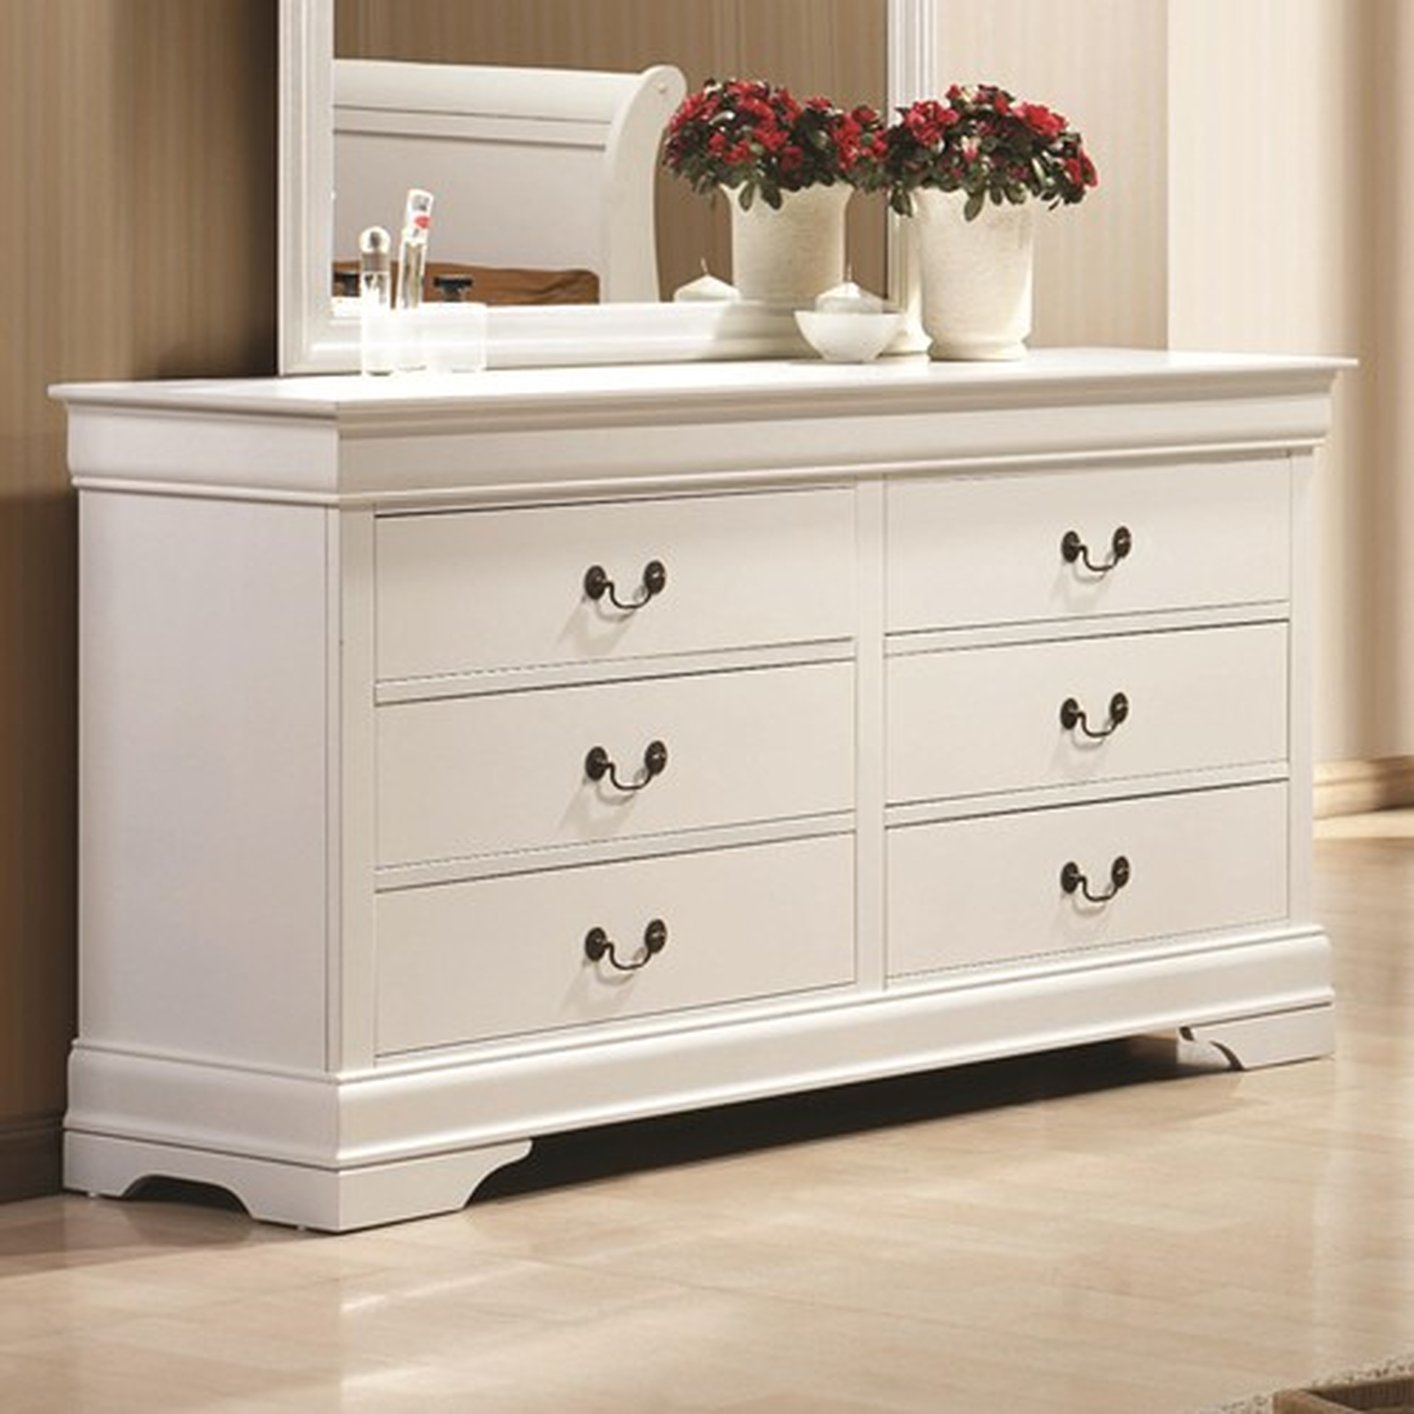 Coaster 204693 White Wood Dresser Steal A Sofa Furniture